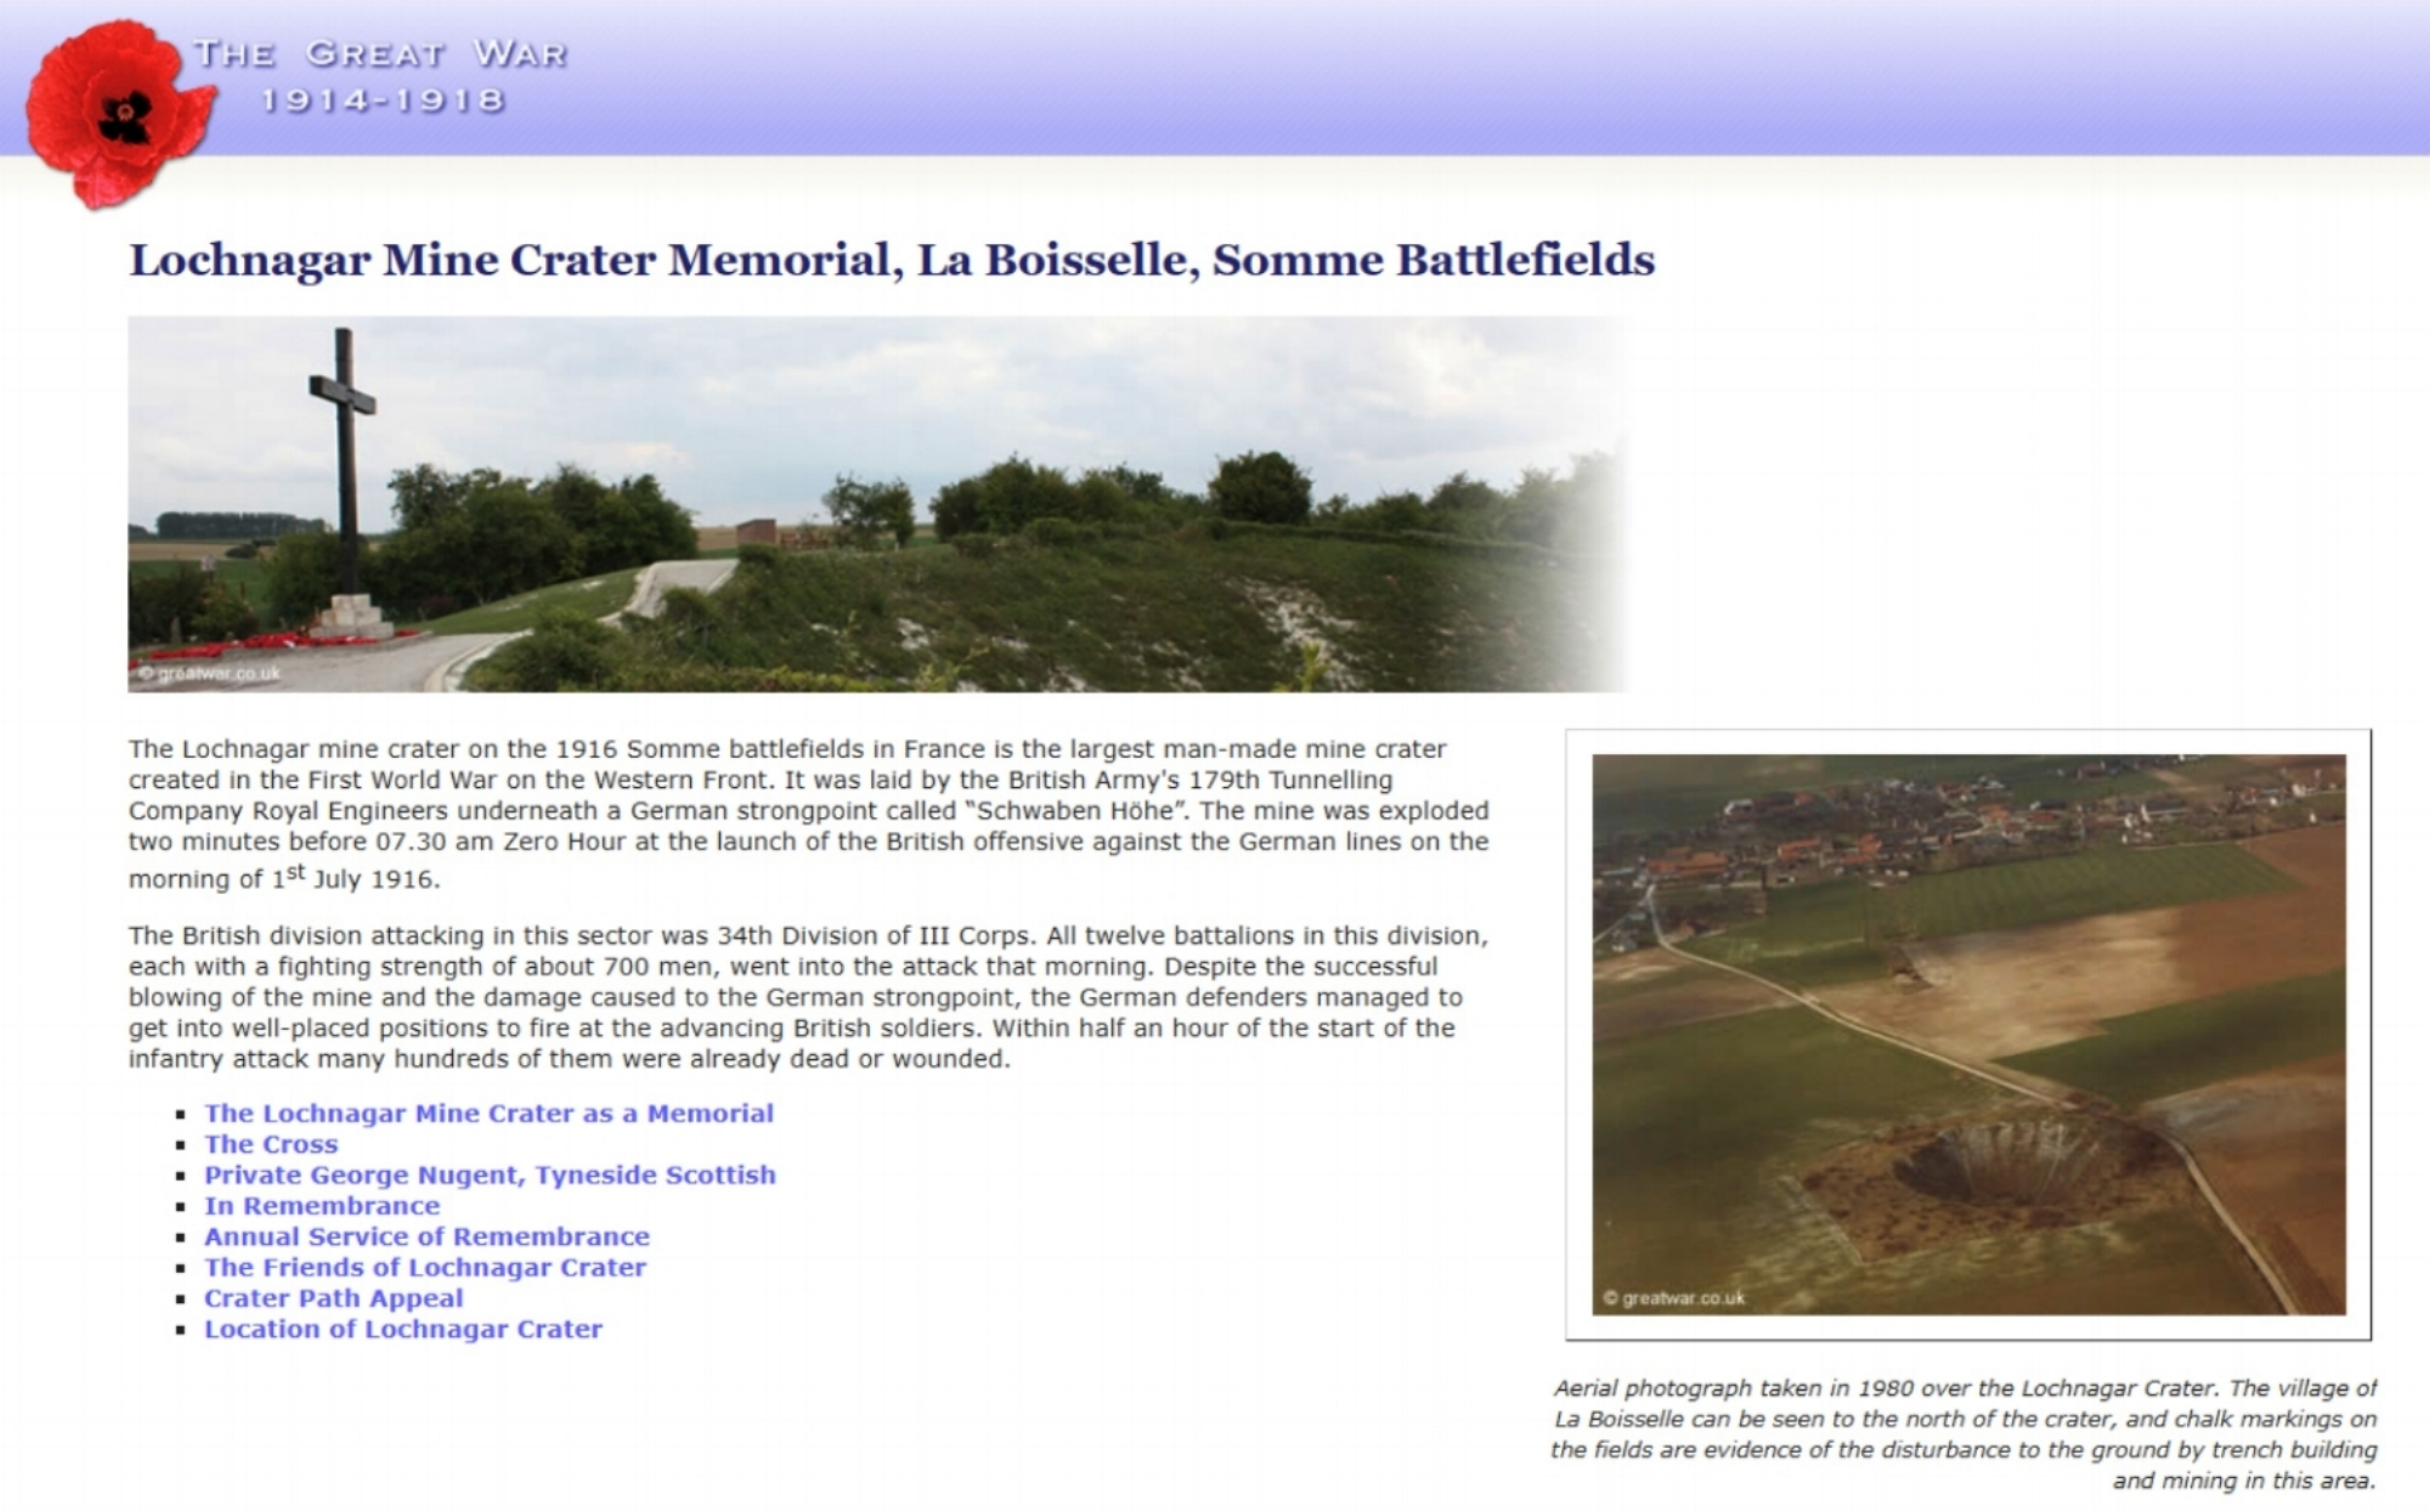 Extract from The Great War website for La Boisselle and the Lochnagar Crater